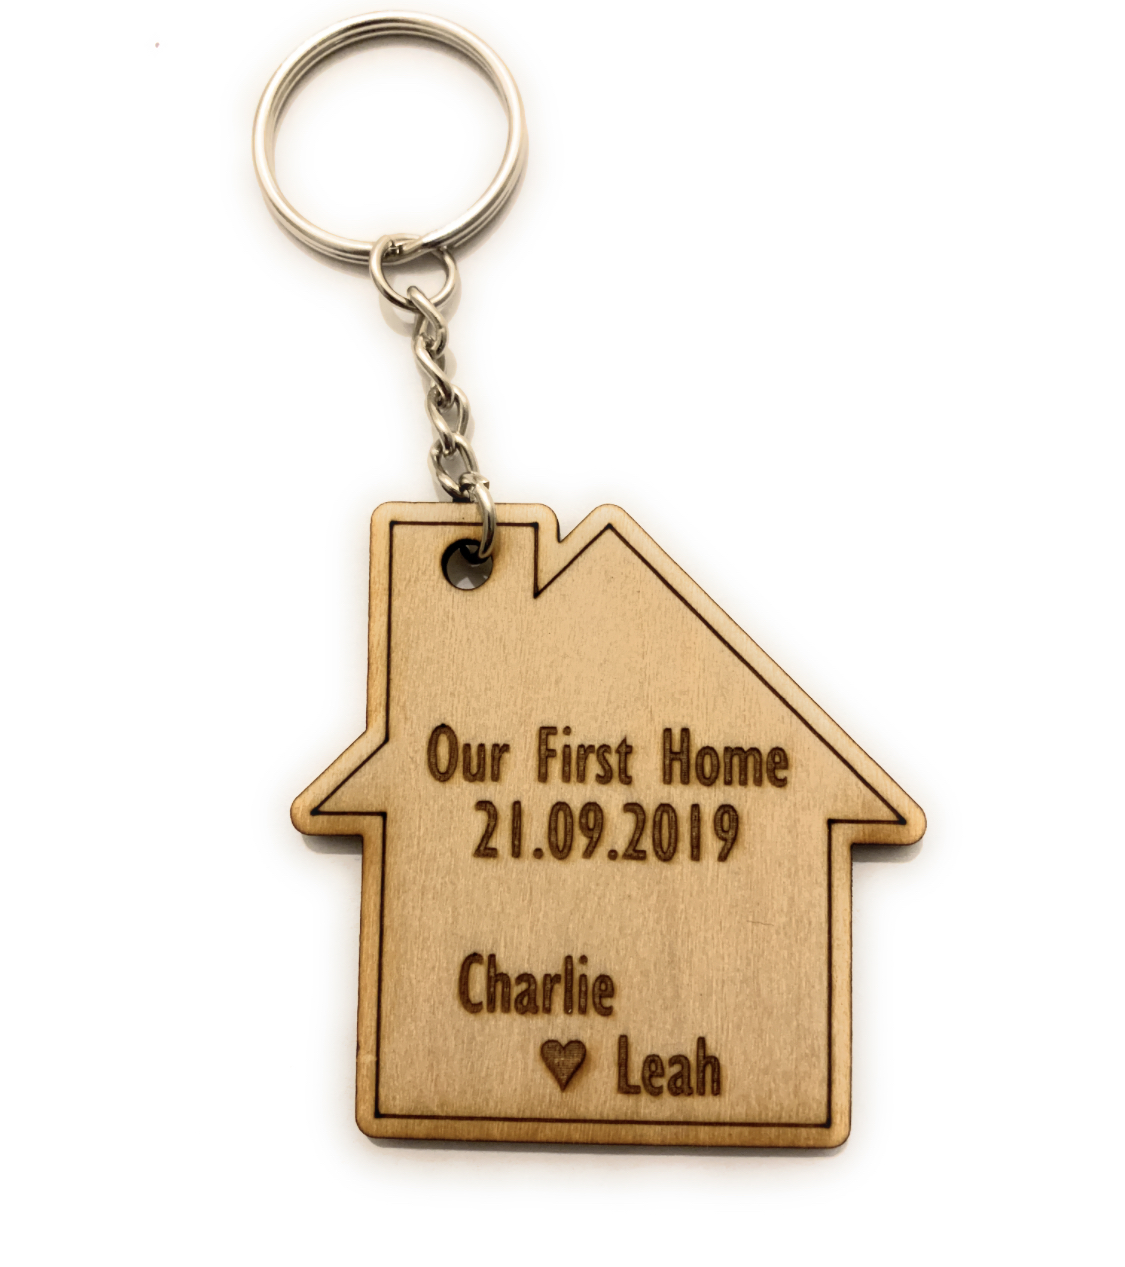 Personalised Wooden Our First Home Keyring Wall Plaque Keys Holder House Warming